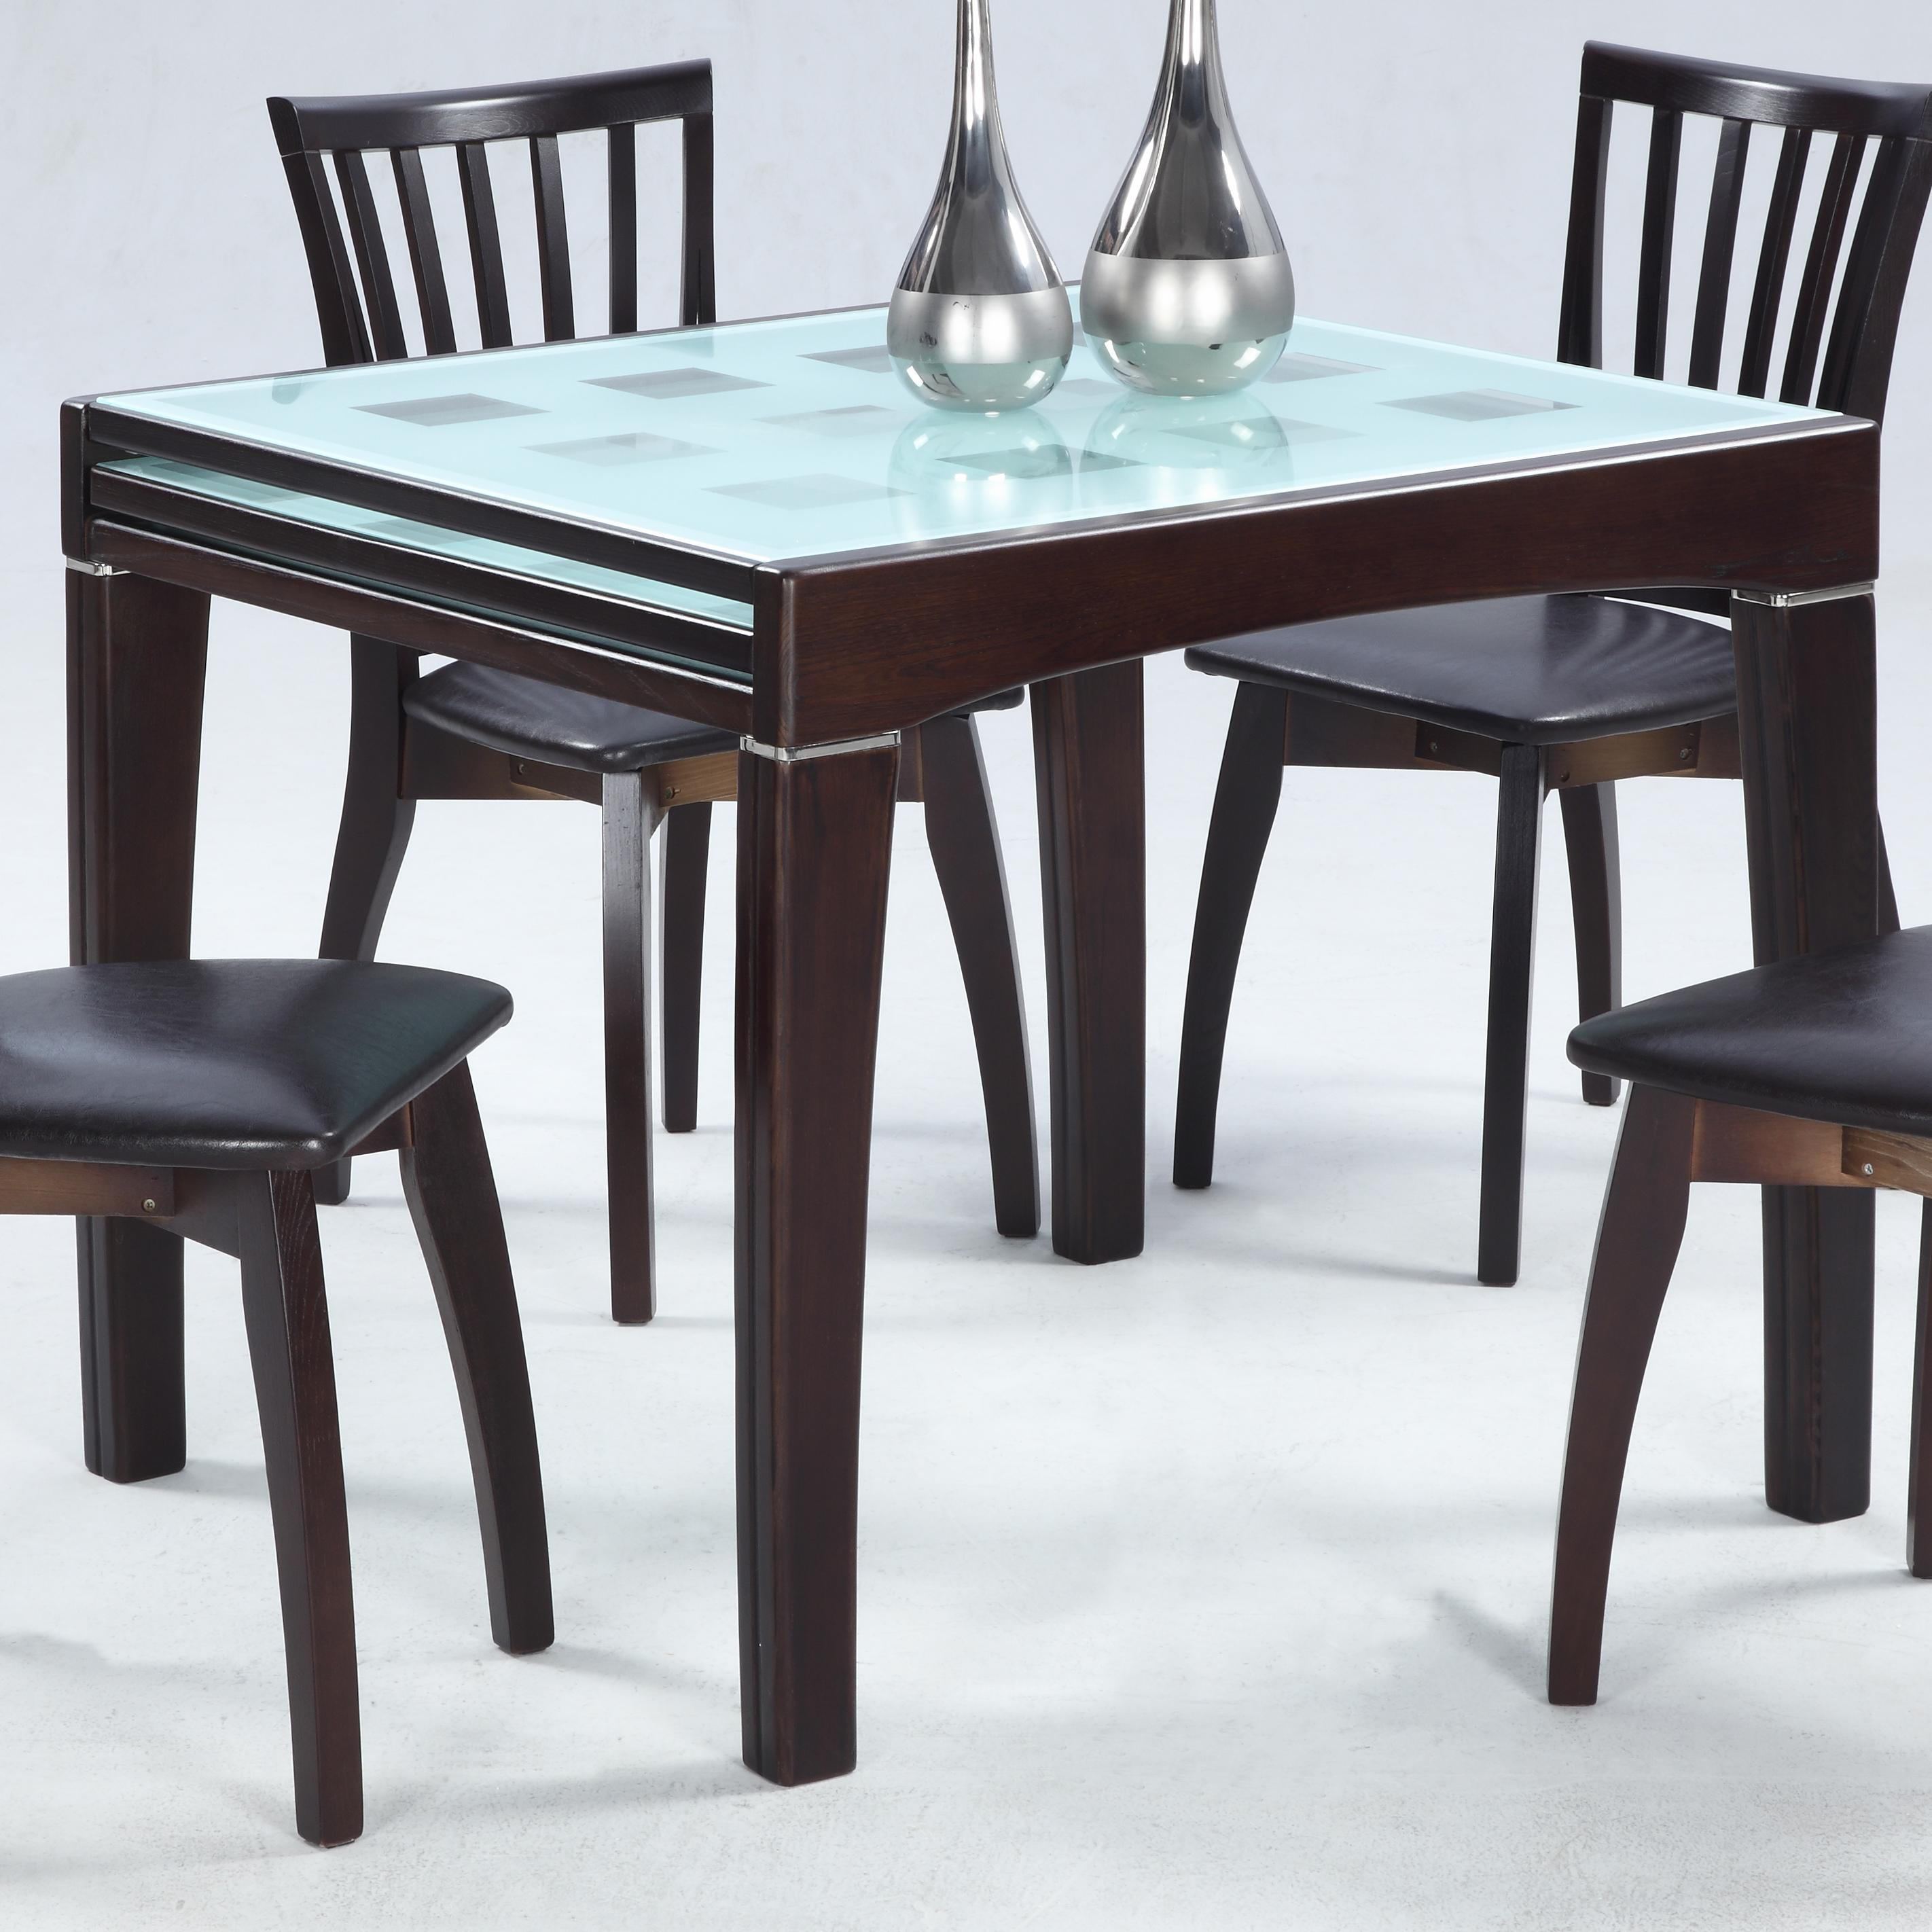 expandable dining table for small spaces expandable dining table for 12 - small room design: expandable UAUHUPV